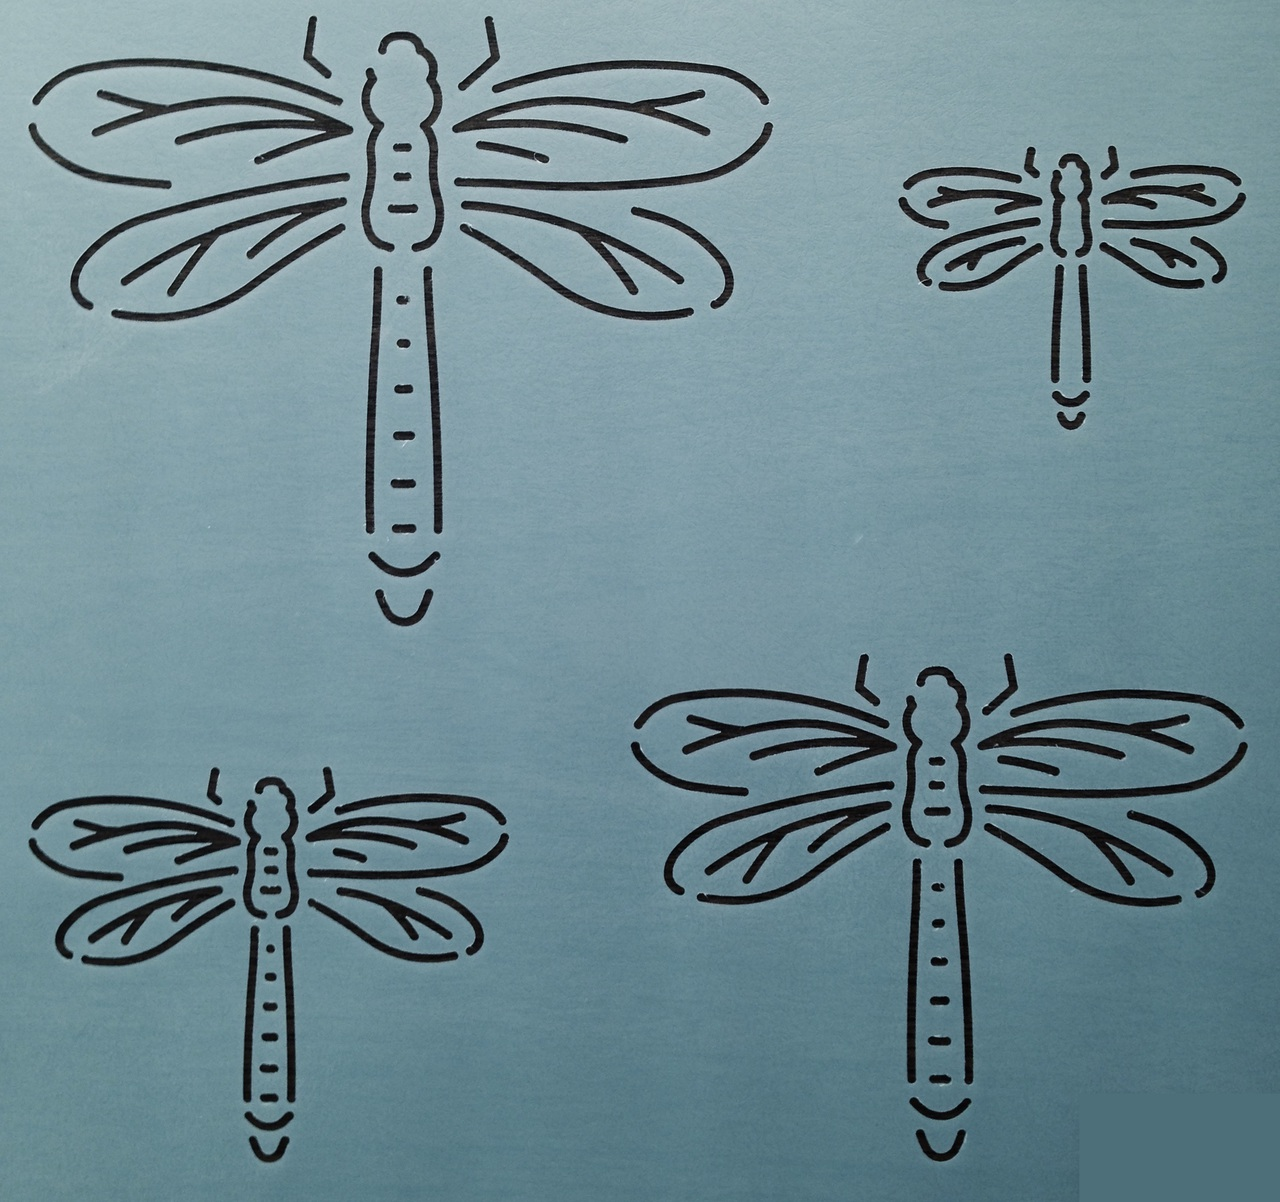 Dragonfly 2'', 3'', 4'' & 5''